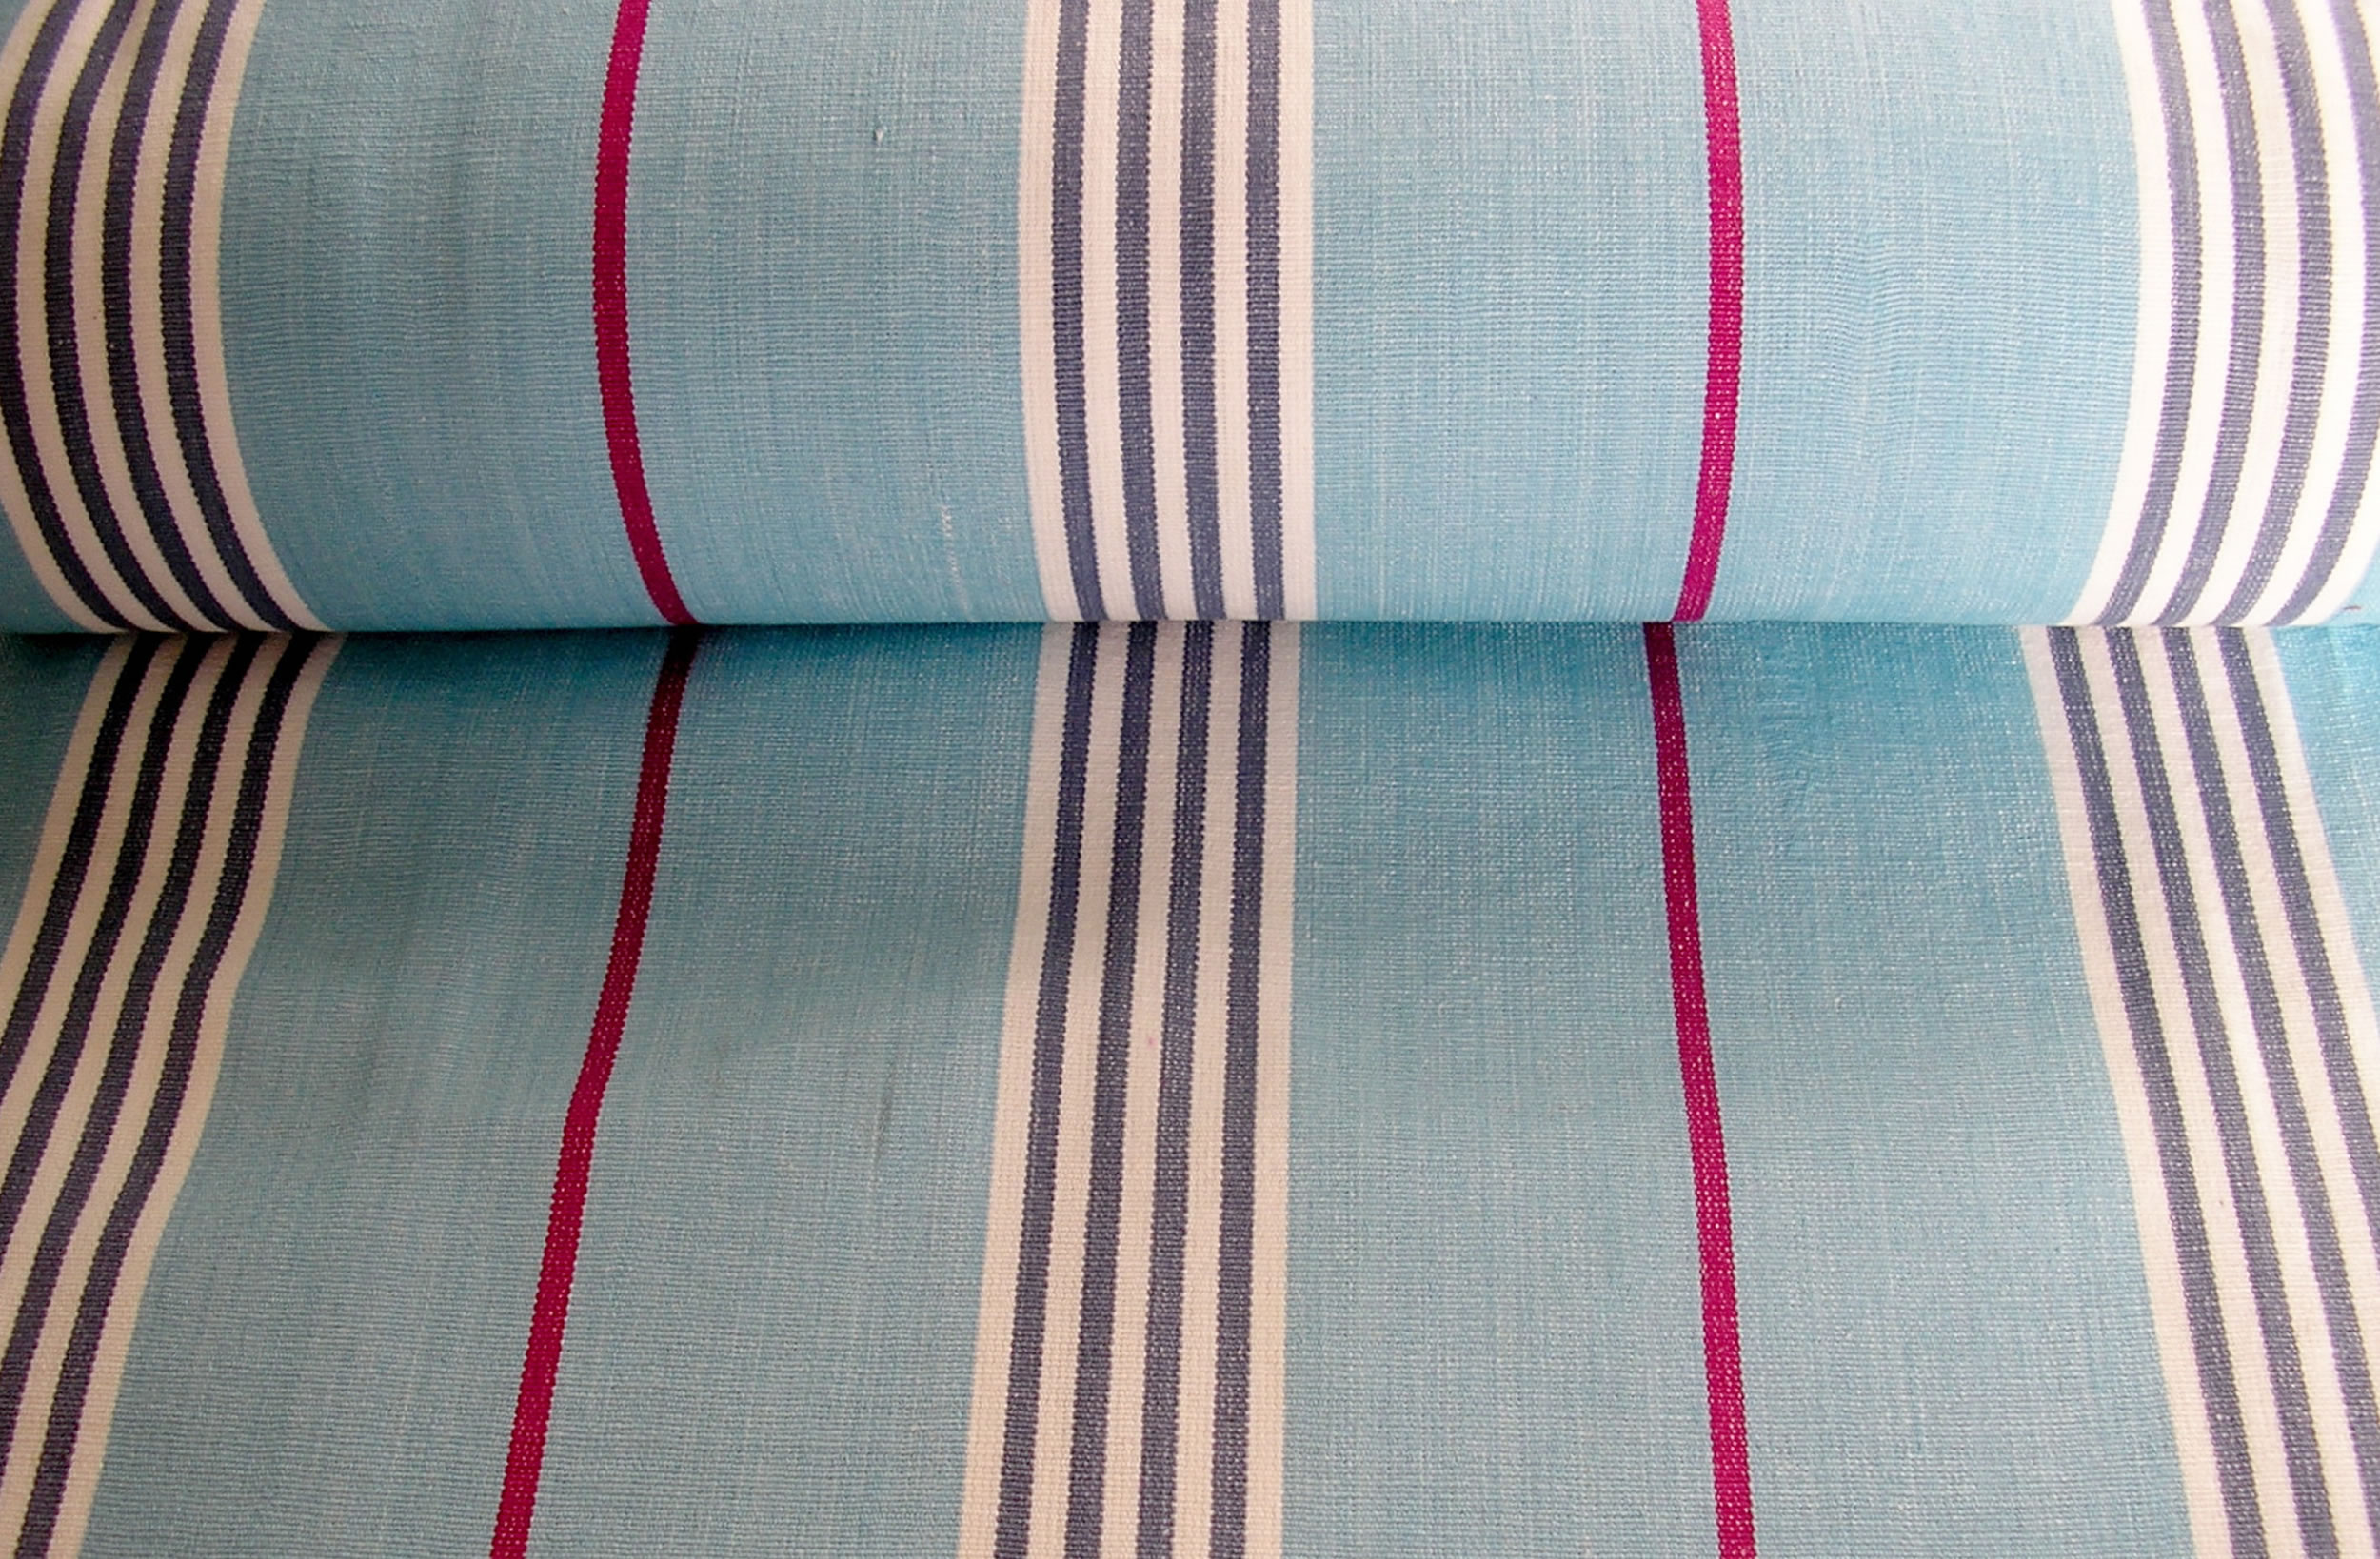 Pale Blue  Deckchair Canvas | Deckchair Fabrics | Striped Deck Chair Fabrics Cha Cha Stripes